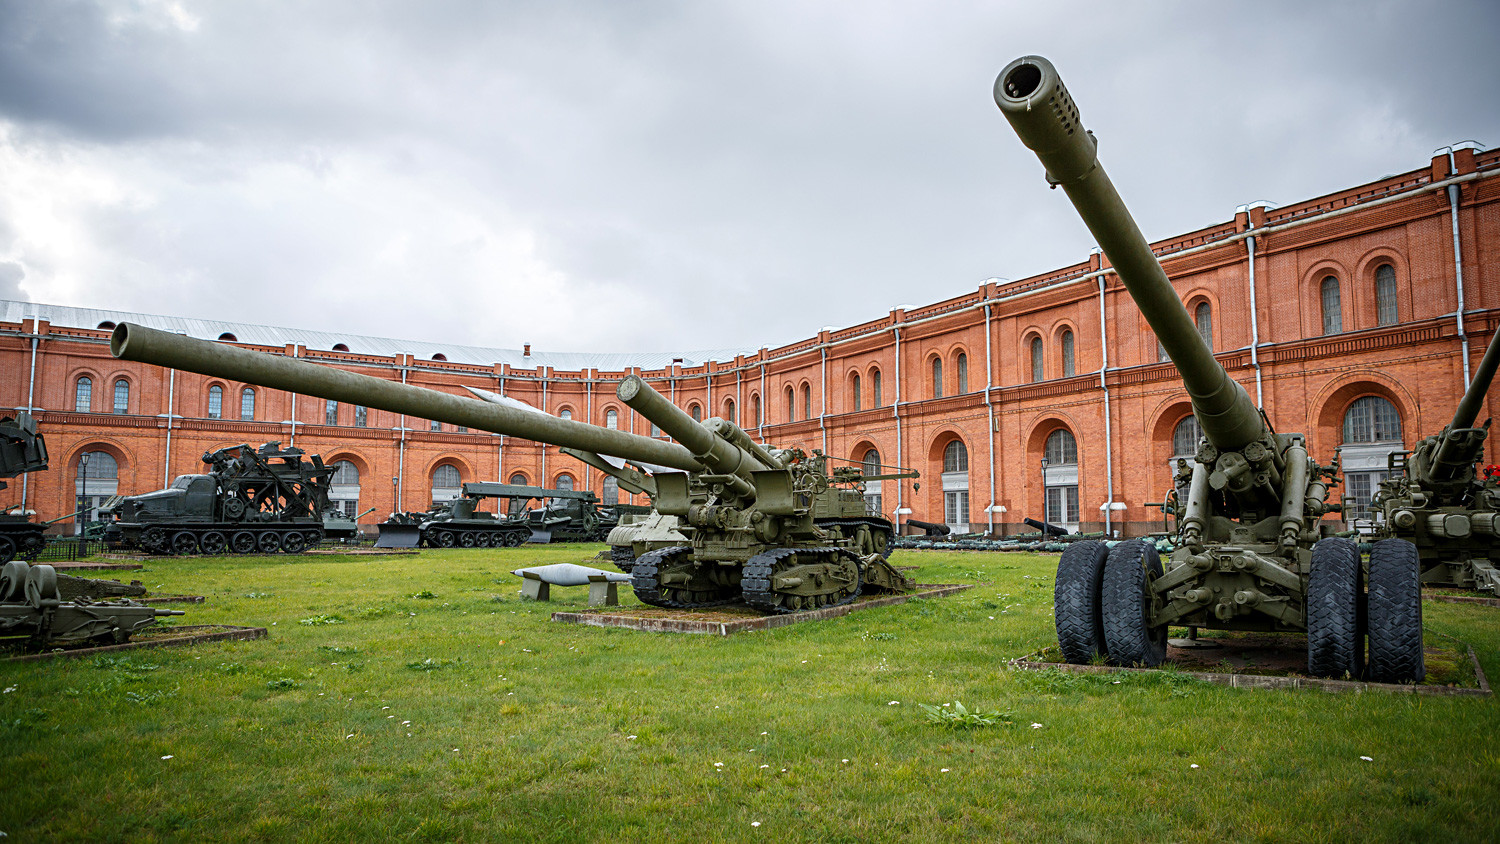 The Military-Historical Museum of the Artillery, Engineer Corps, and Signal Corps